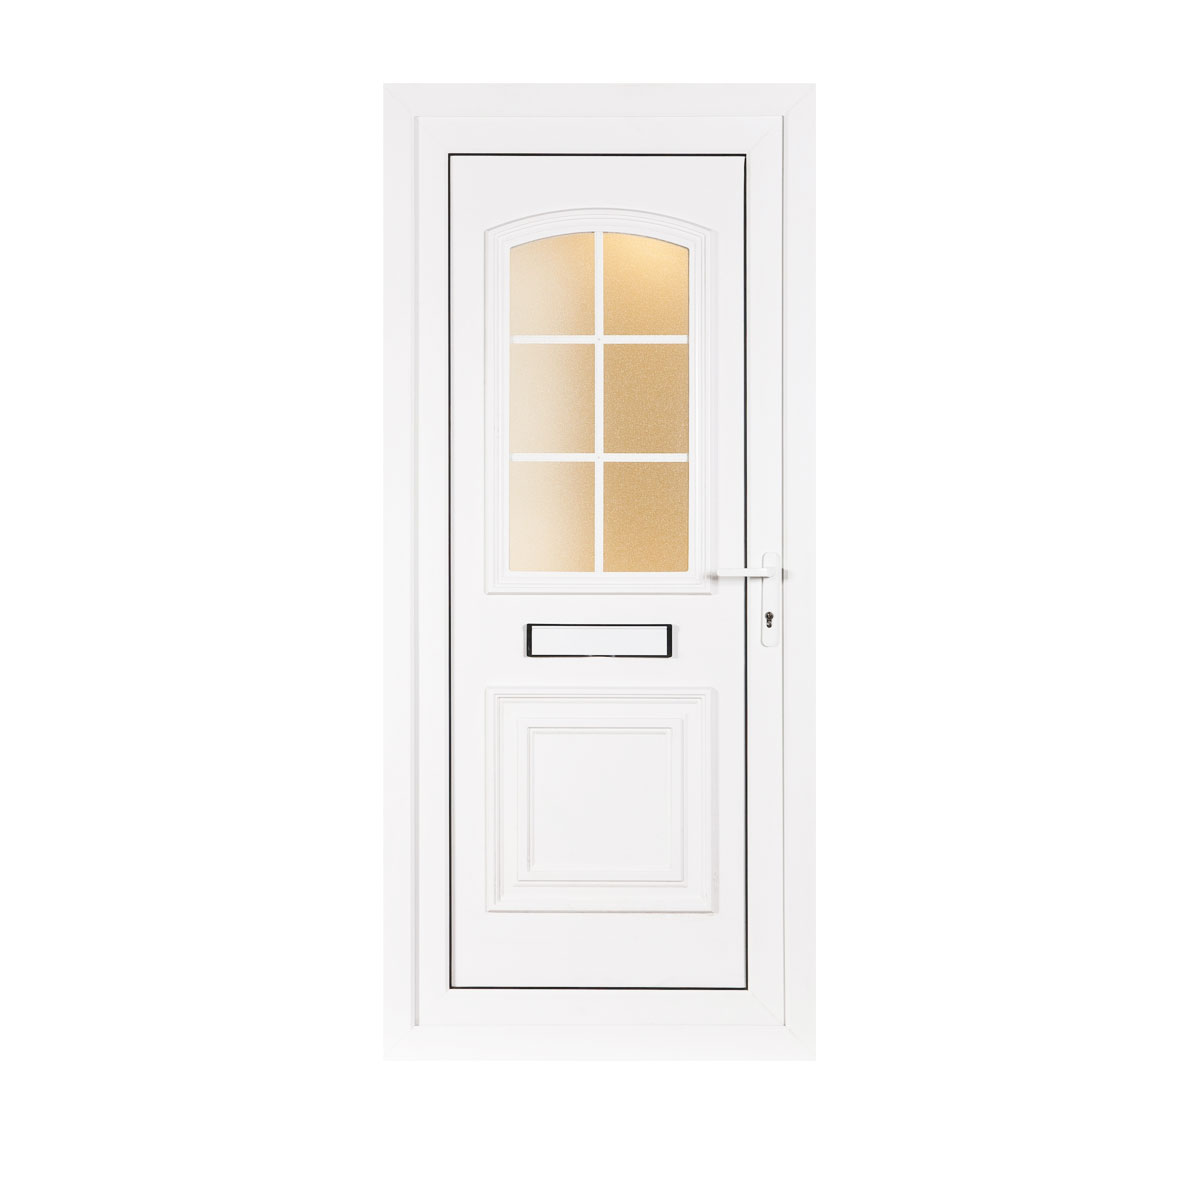 Maulden upvc front door left hand hung flying doors for Upvc front doors